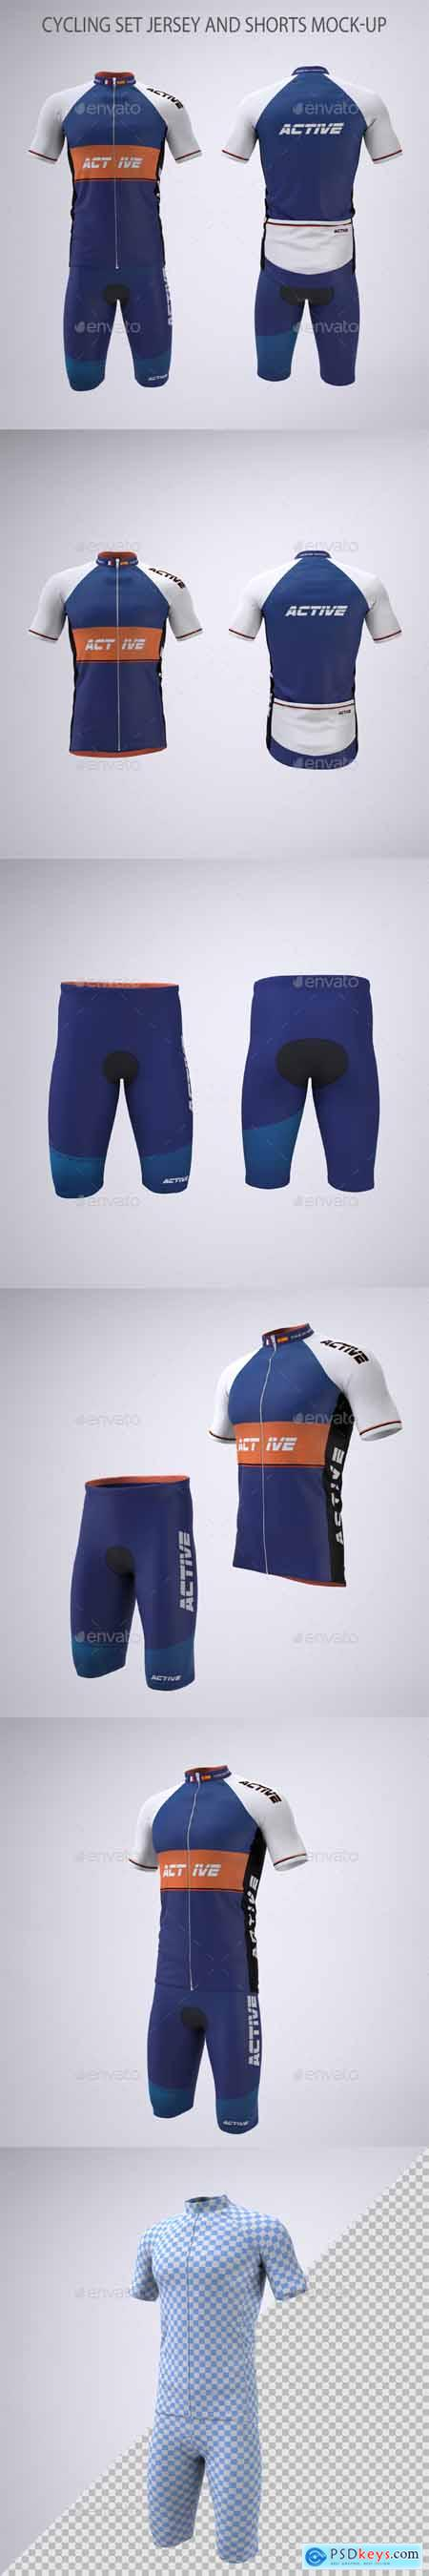 Cycling Set Jersey and Shorts Mock-up 28972672